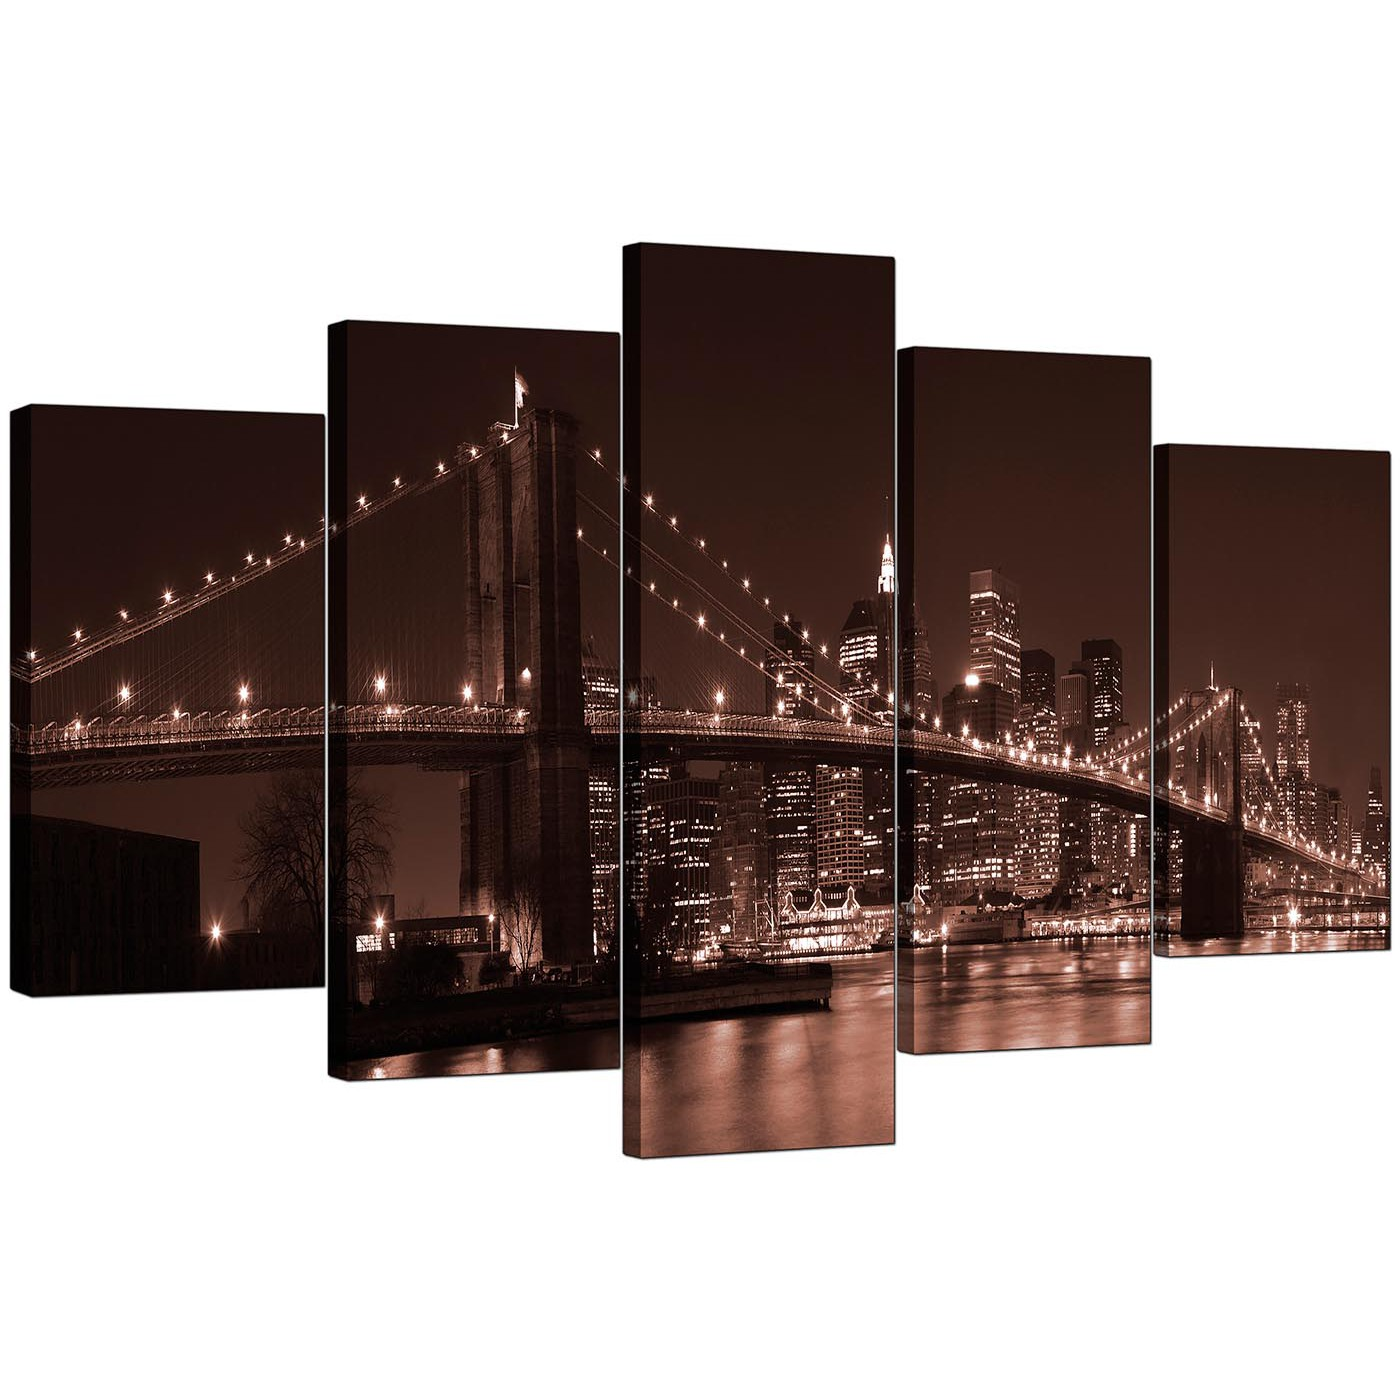 Extra Large New York Canvas Prints 5 Piece in Brown : cheap 5 part set brown new york brooklyn manhattan canvas art 51221 from www.wallfillers.co.uk size 1400 x 1400 jpeg 243kB